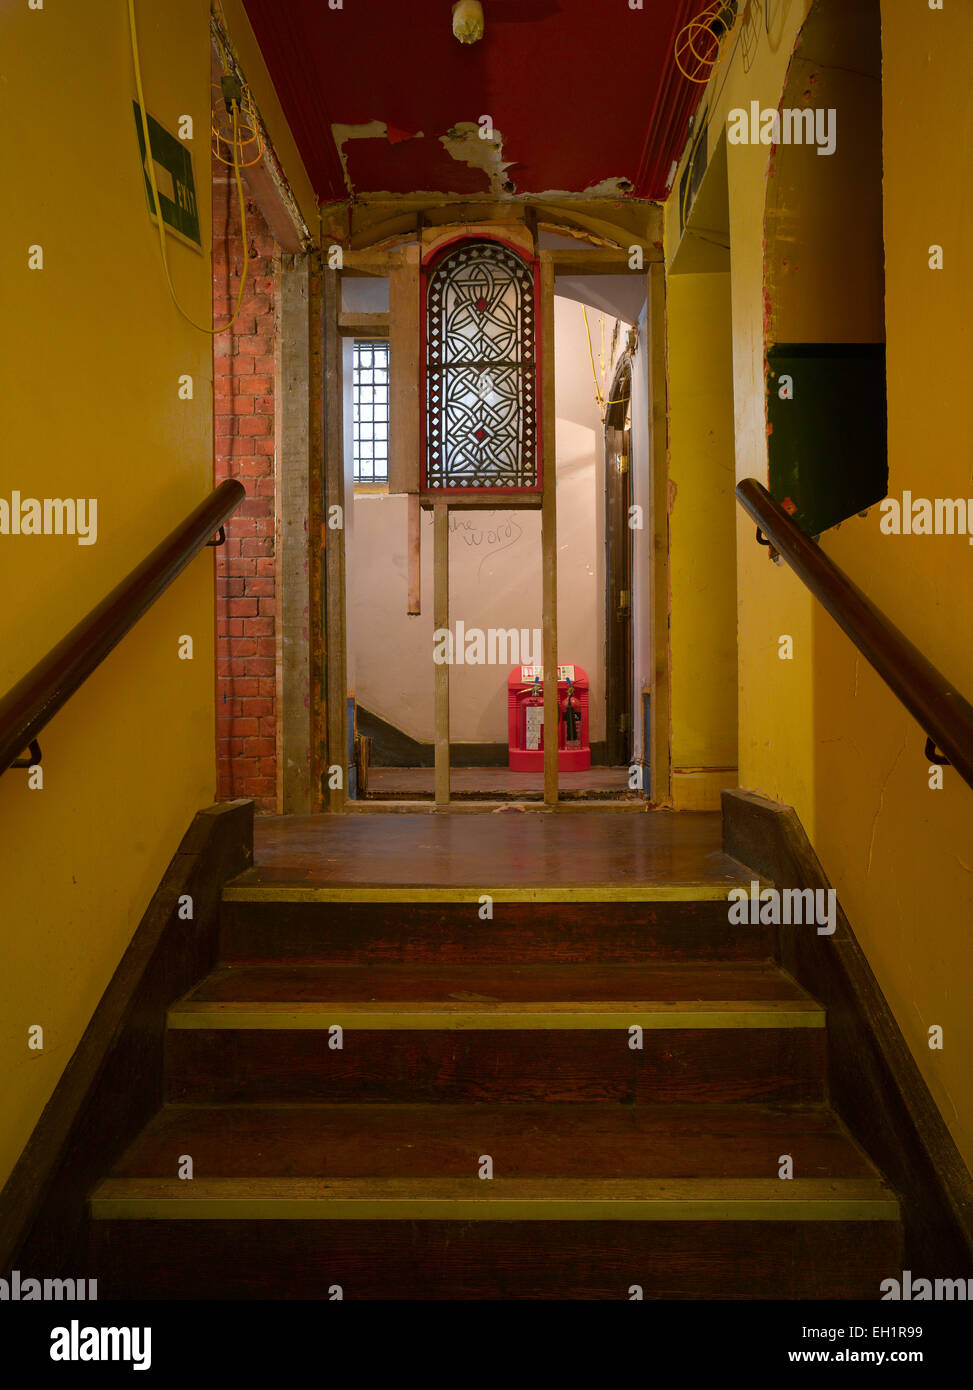 Half built partition with stained glass window at top of staircase during renovation, Welsh Chapel, London, UK - Stock Image